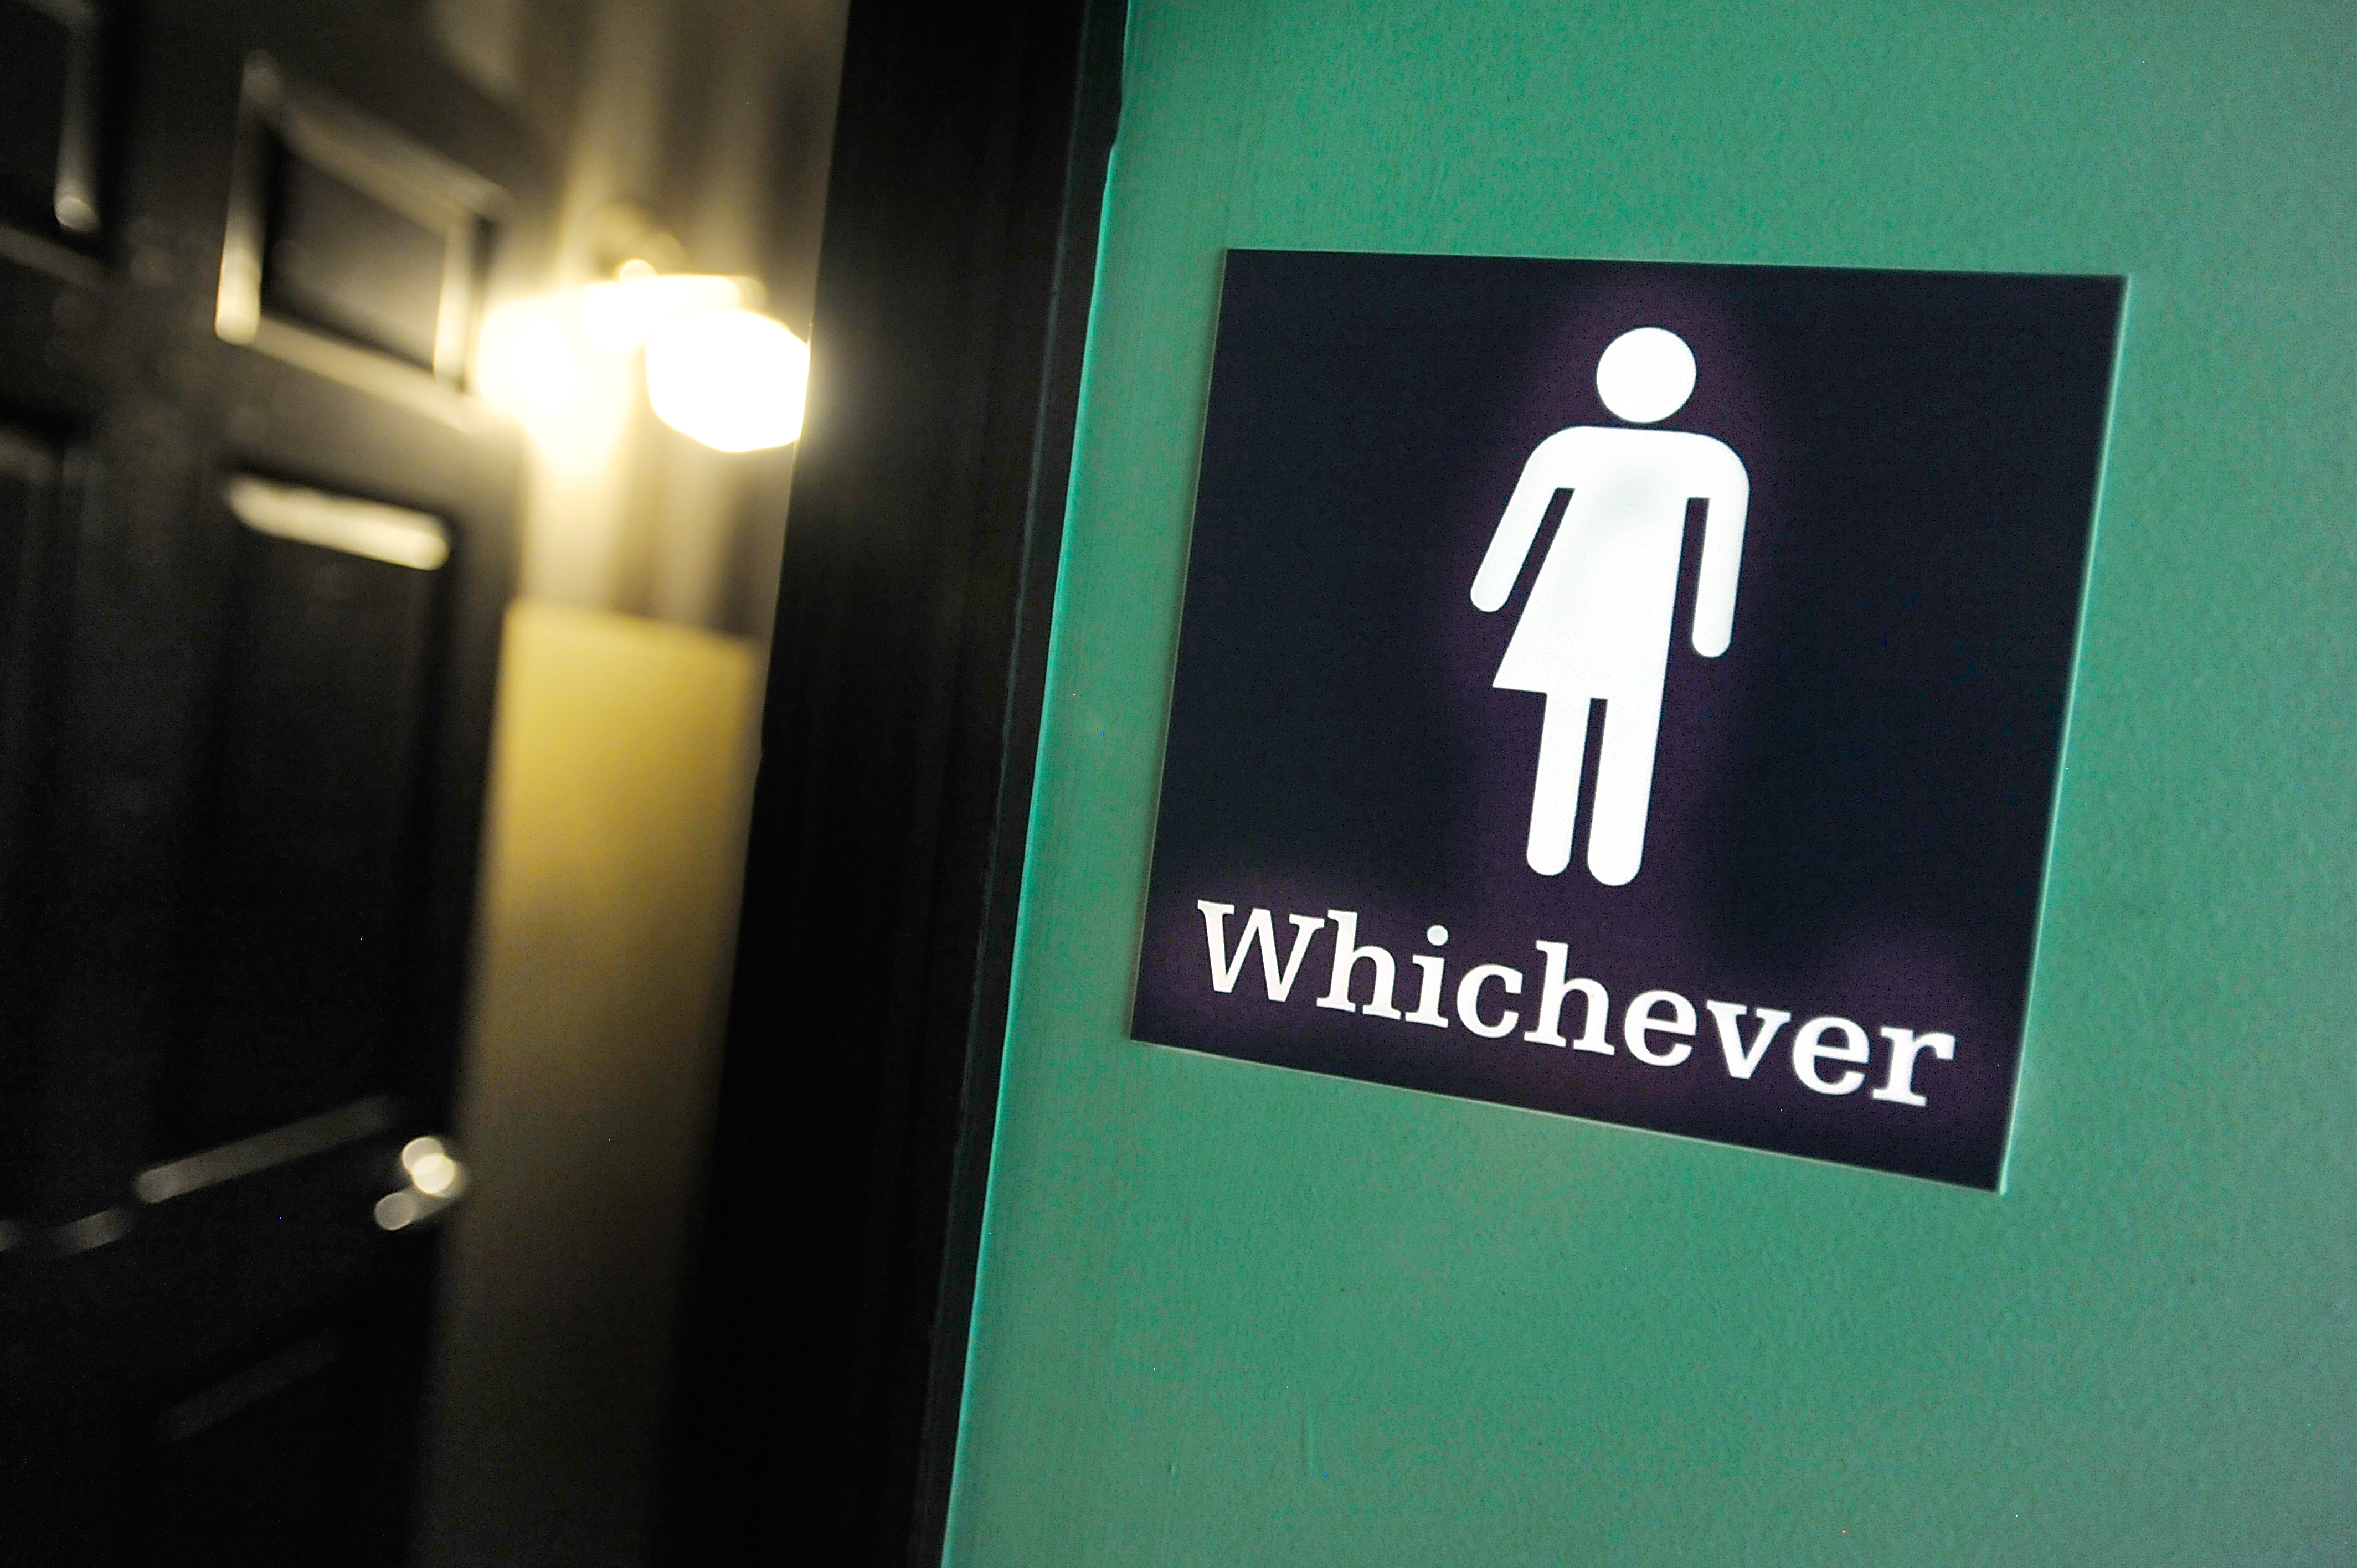 Reasons All Bathrooms Should Be Gender Neutral - Why gender neutral bathrooms are important